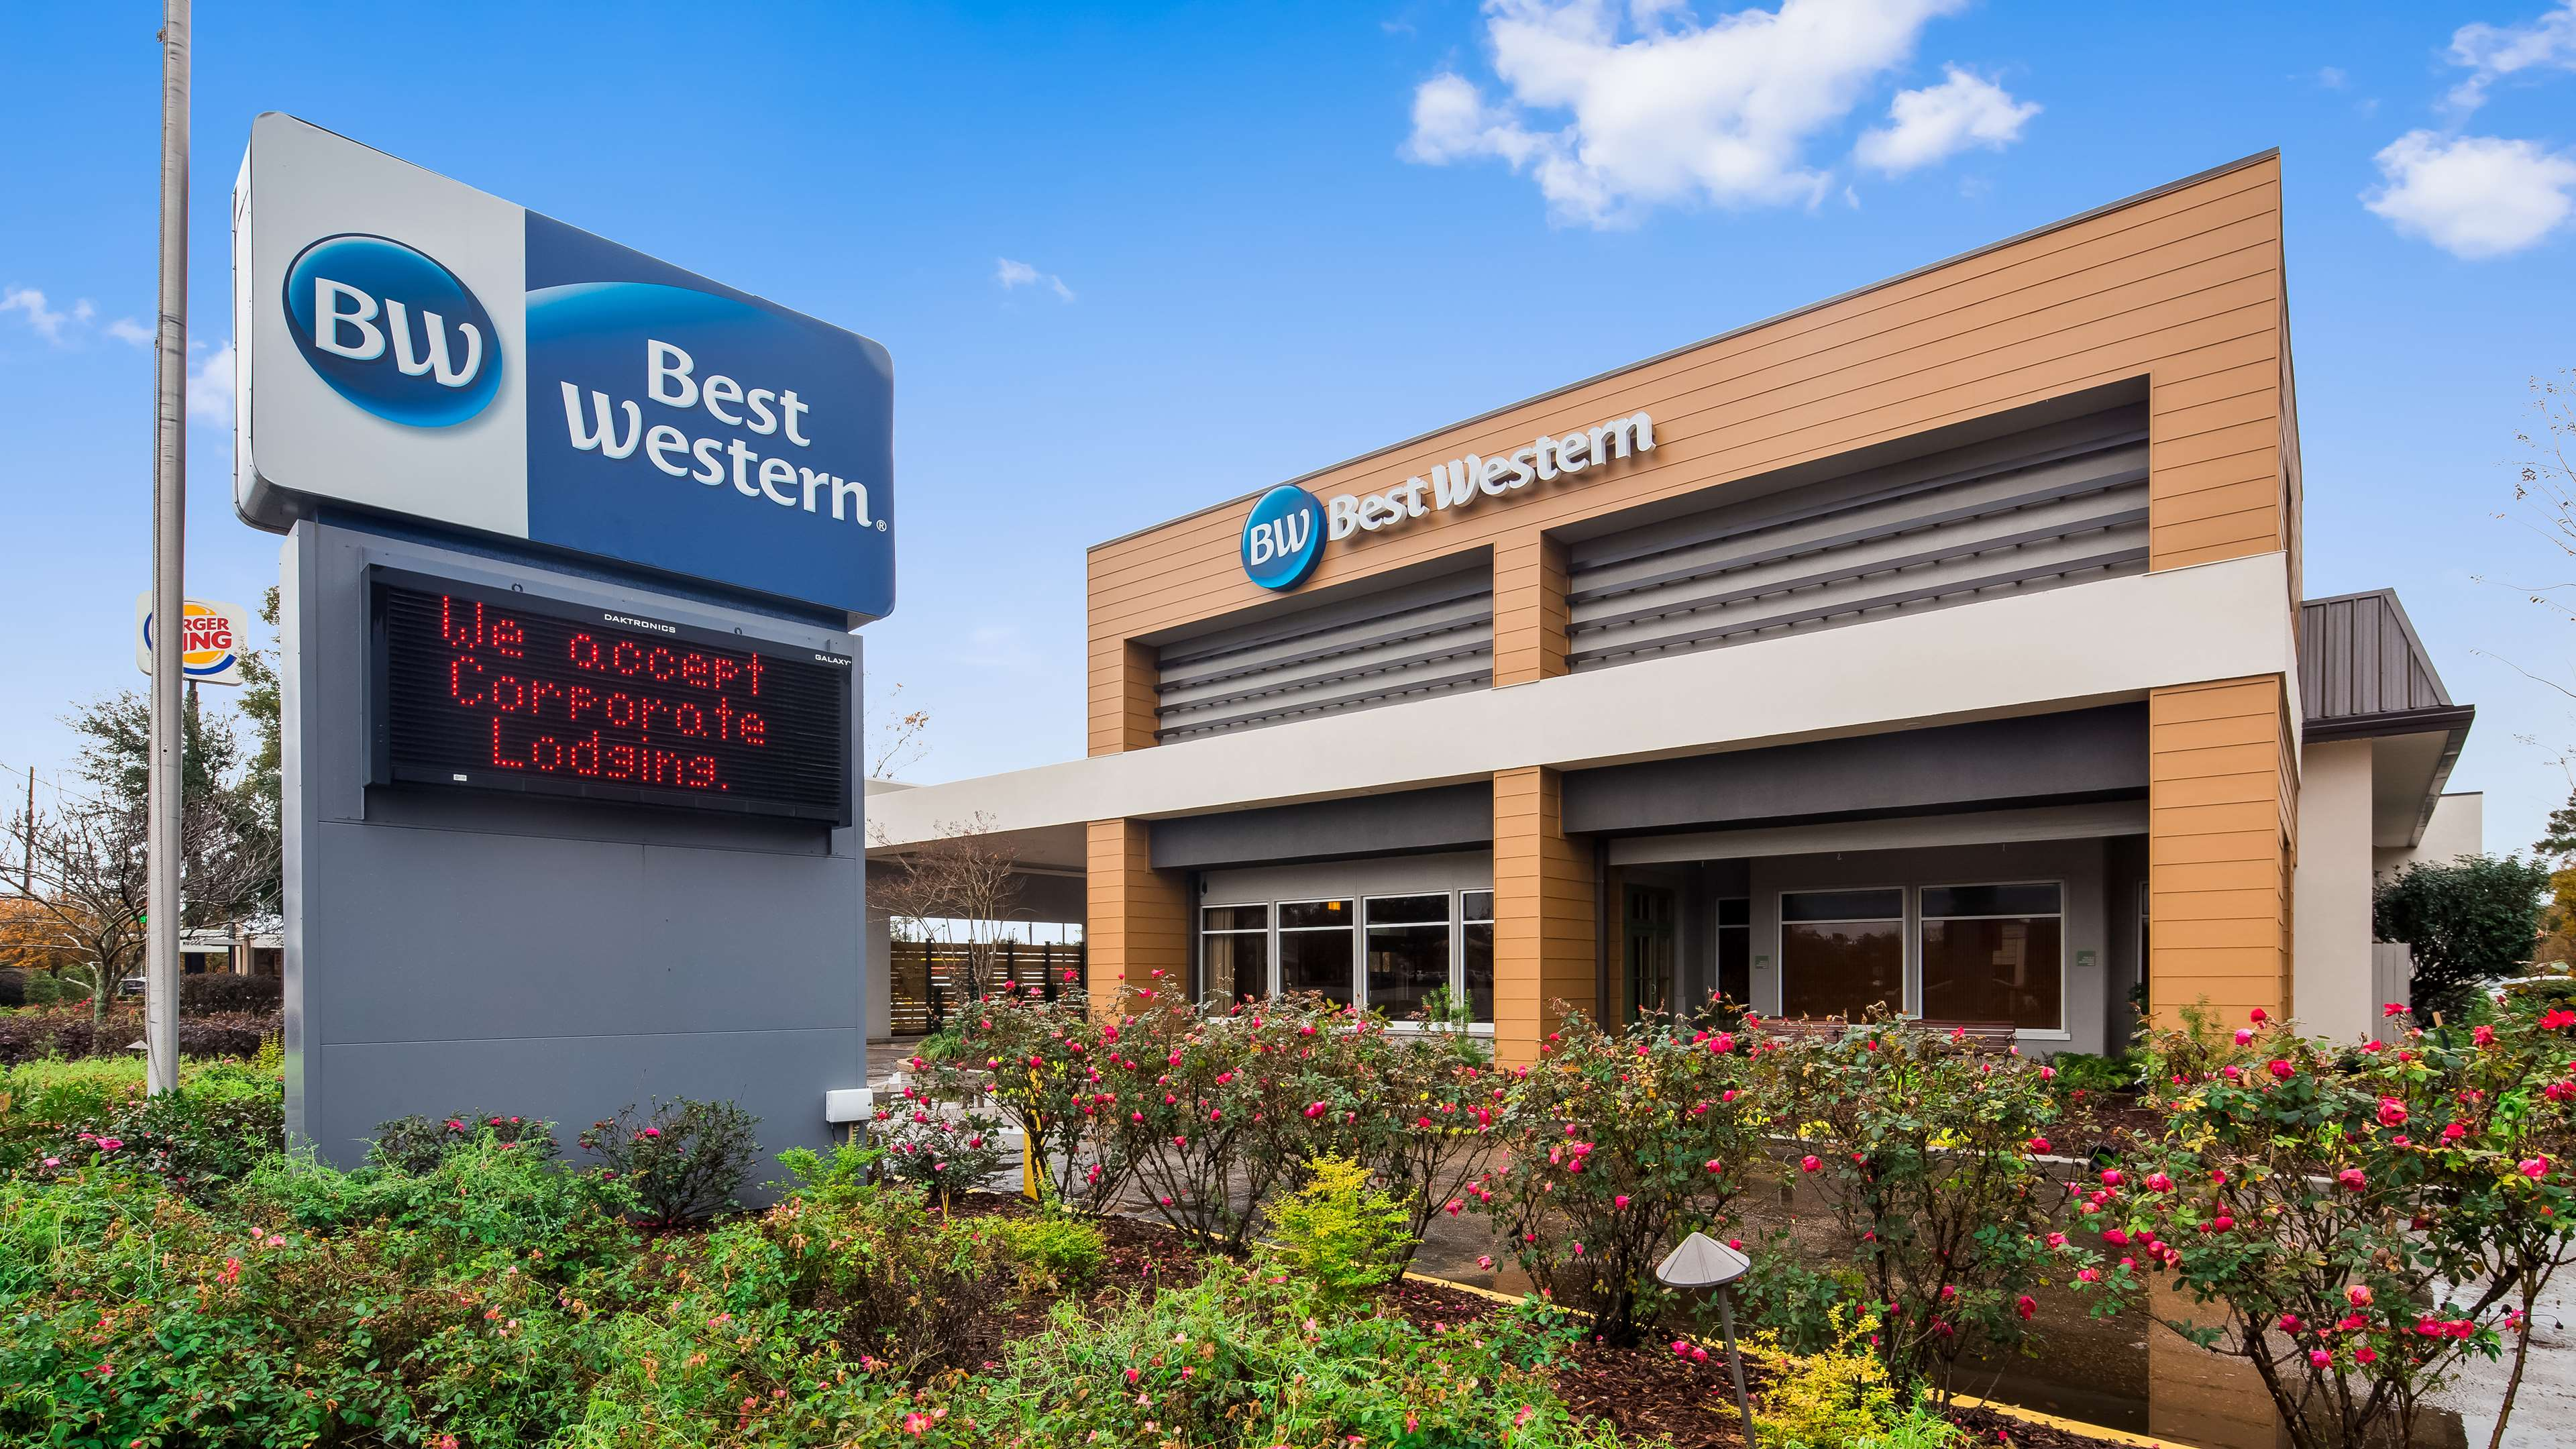 Best Western Hotels New Orleans Area